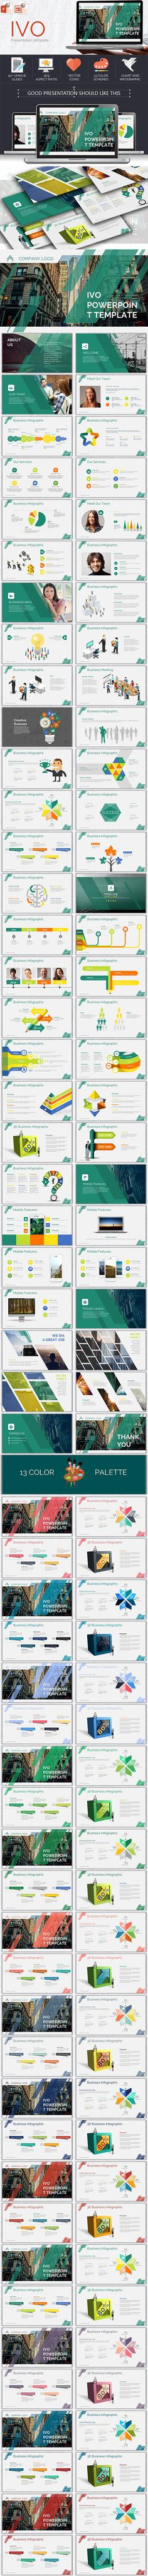 IVO Powerpoint Template - Business PowerPoint Templates